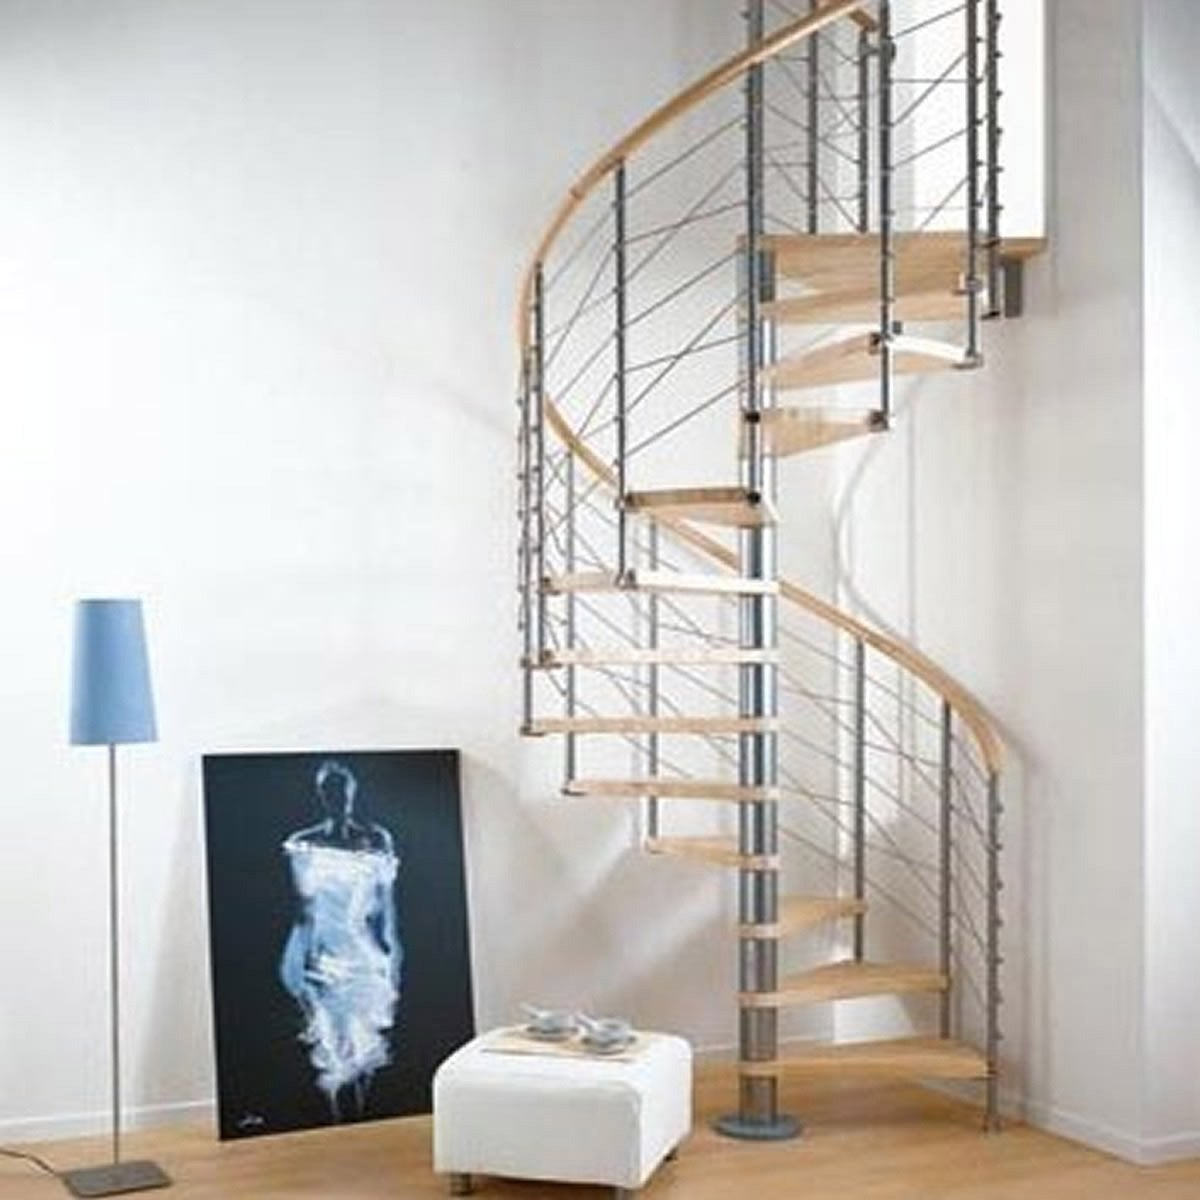 Escalier colima on rond ring structure m tal marche bois for Barriere escalier leroy merlin